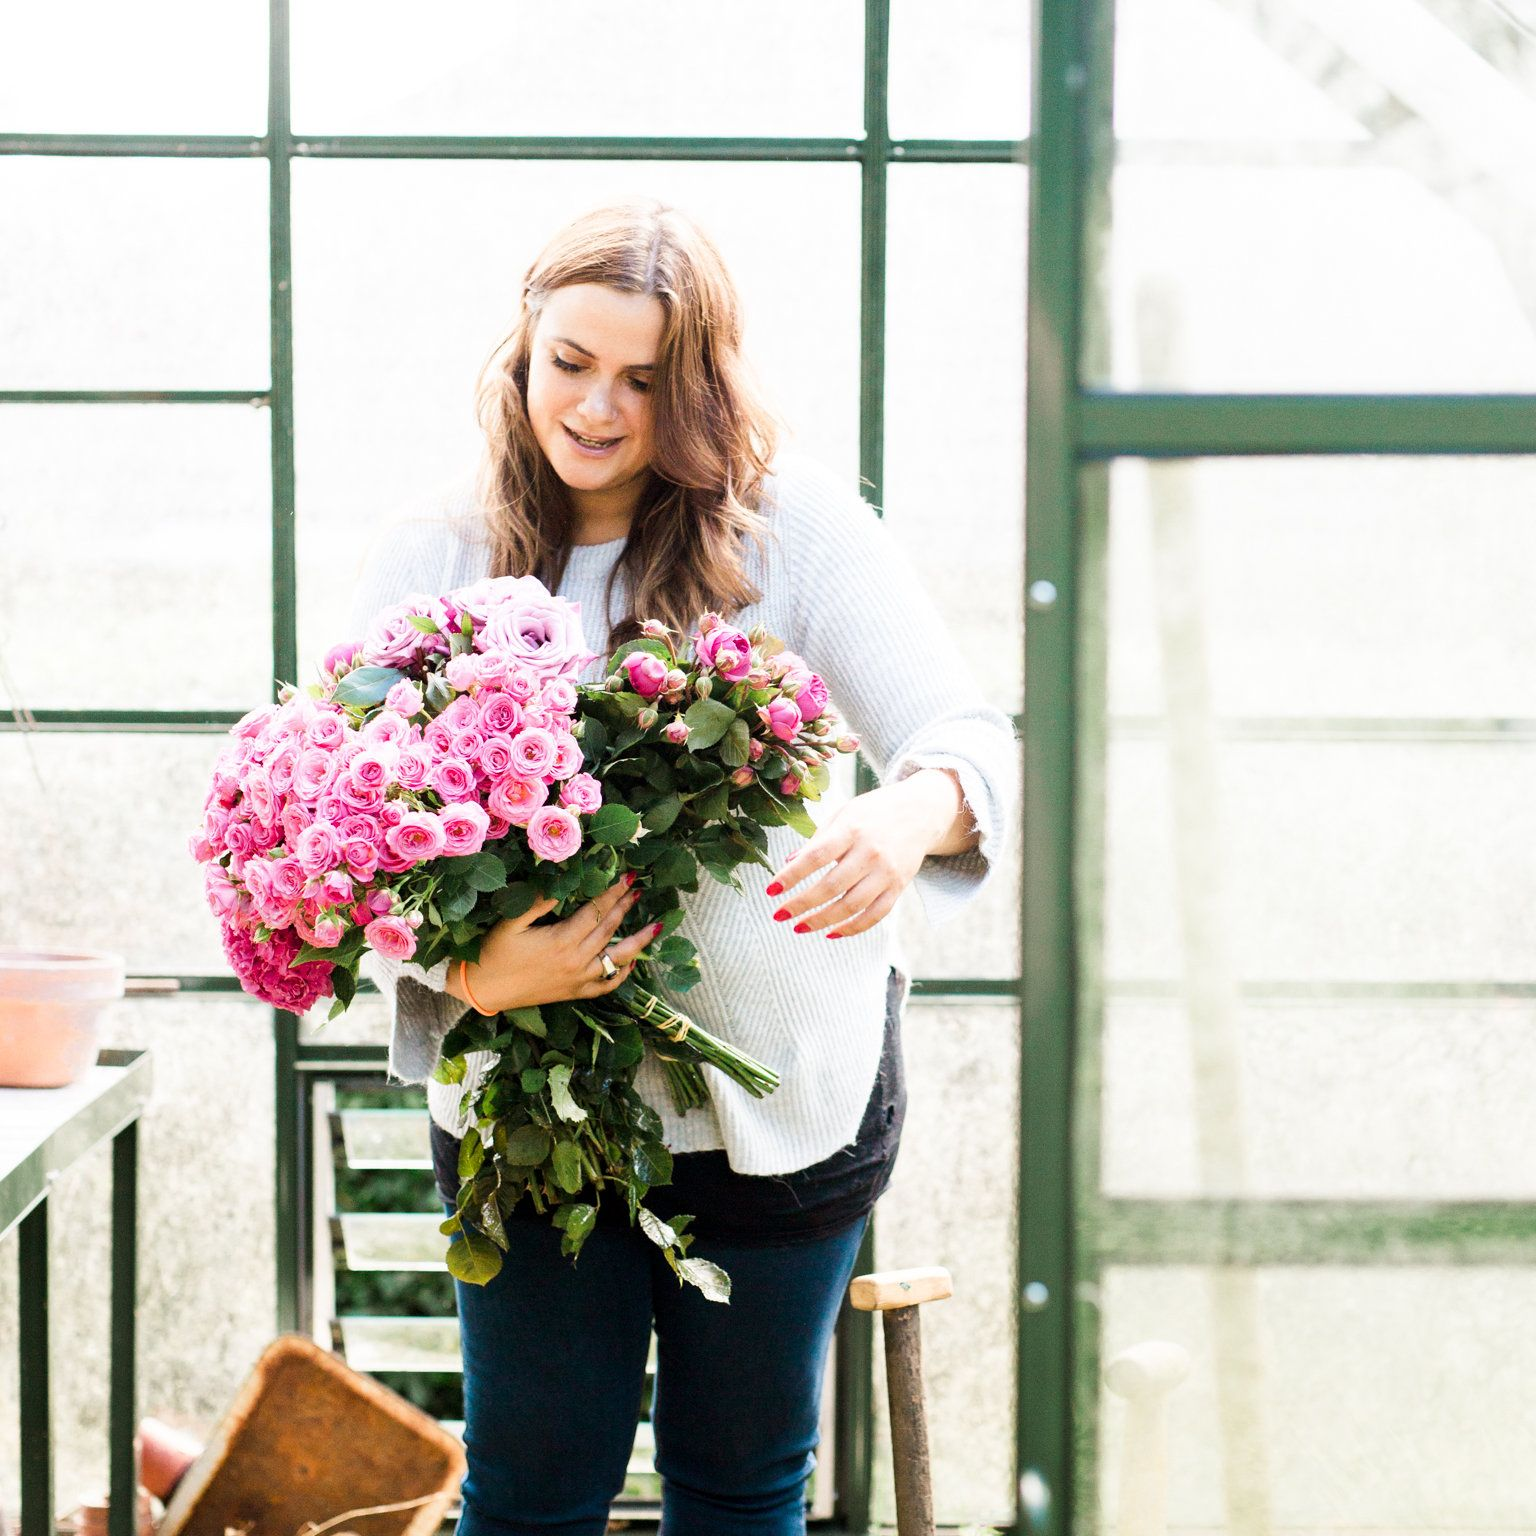 A day in the life of: an award-winning florist